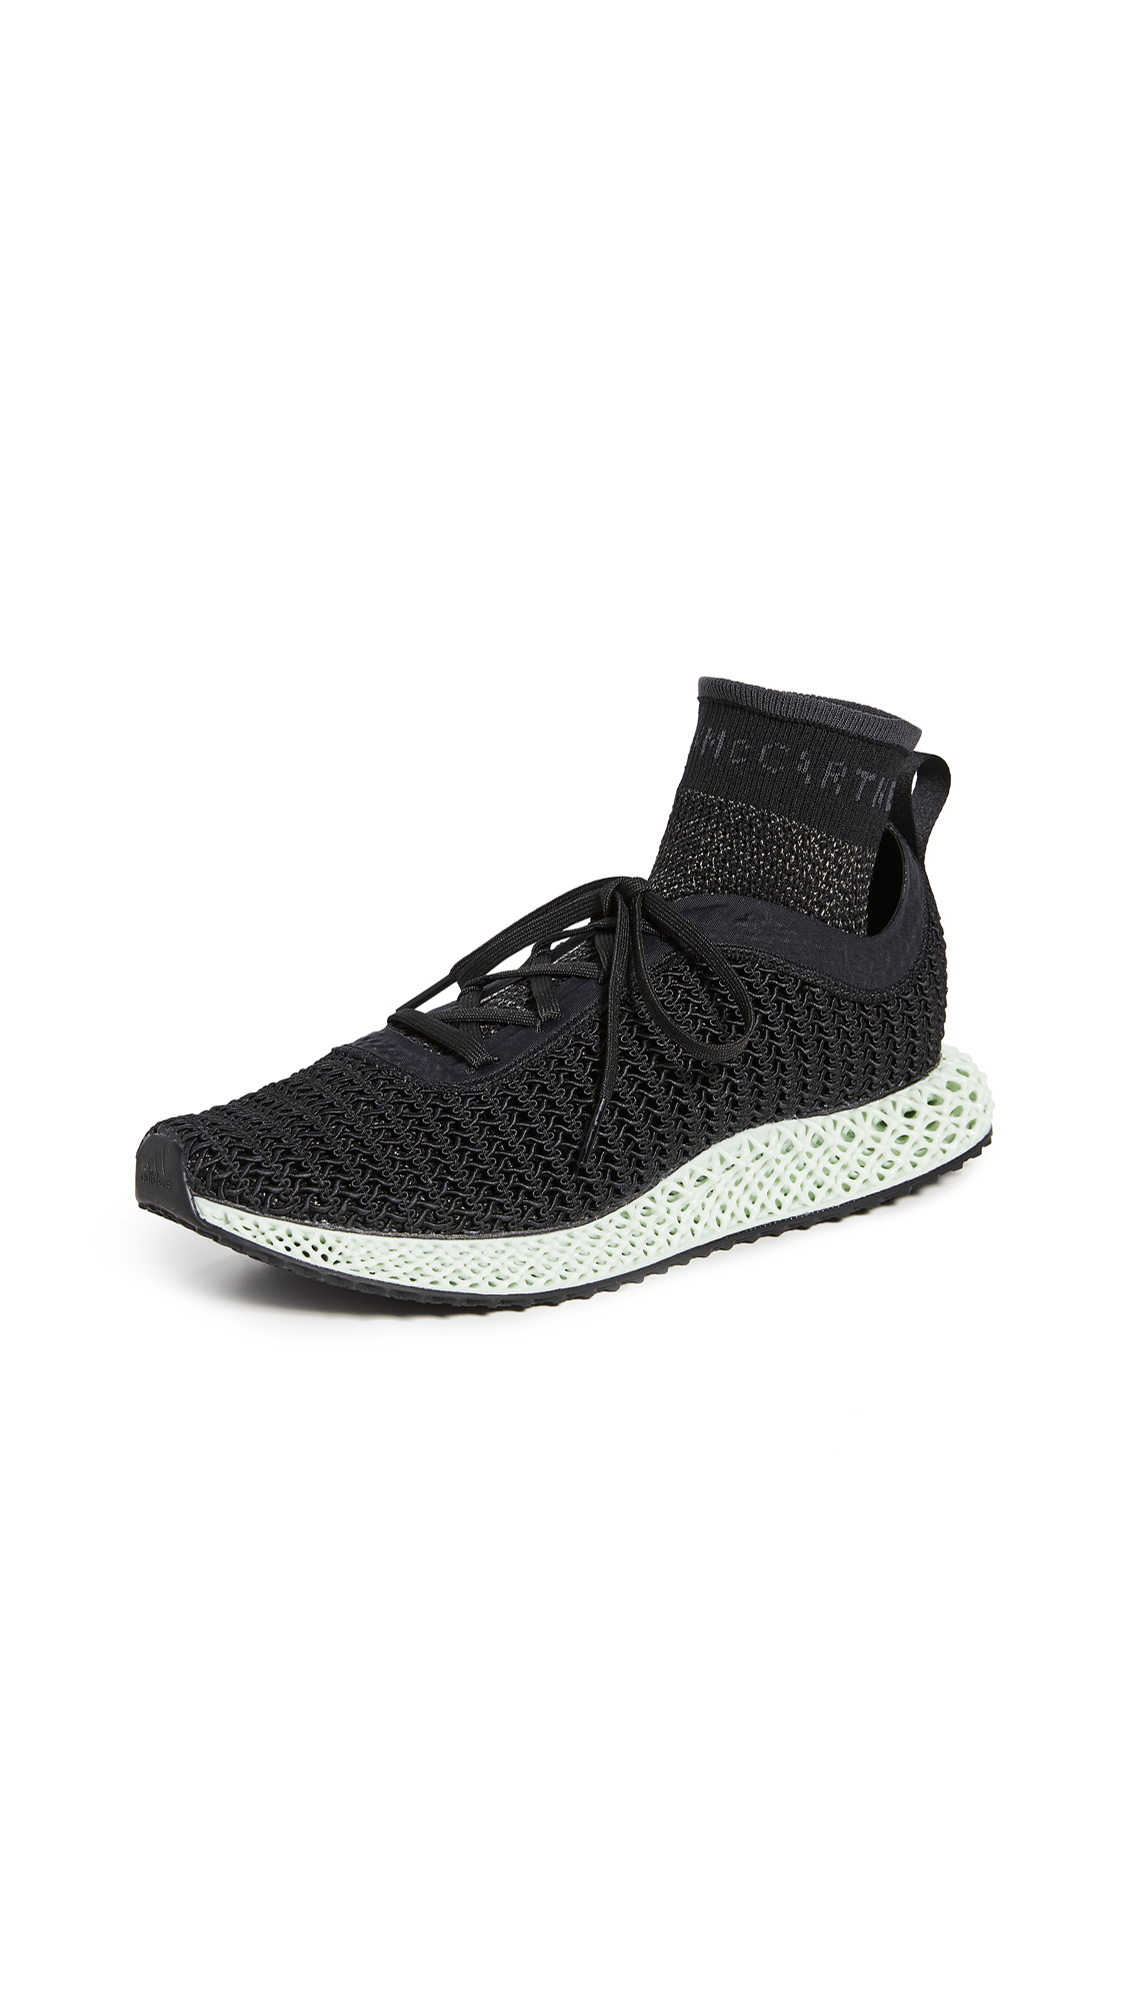 adidas by Stella McCartney Alphaedge 4D Sneakers - 55% Off Sale